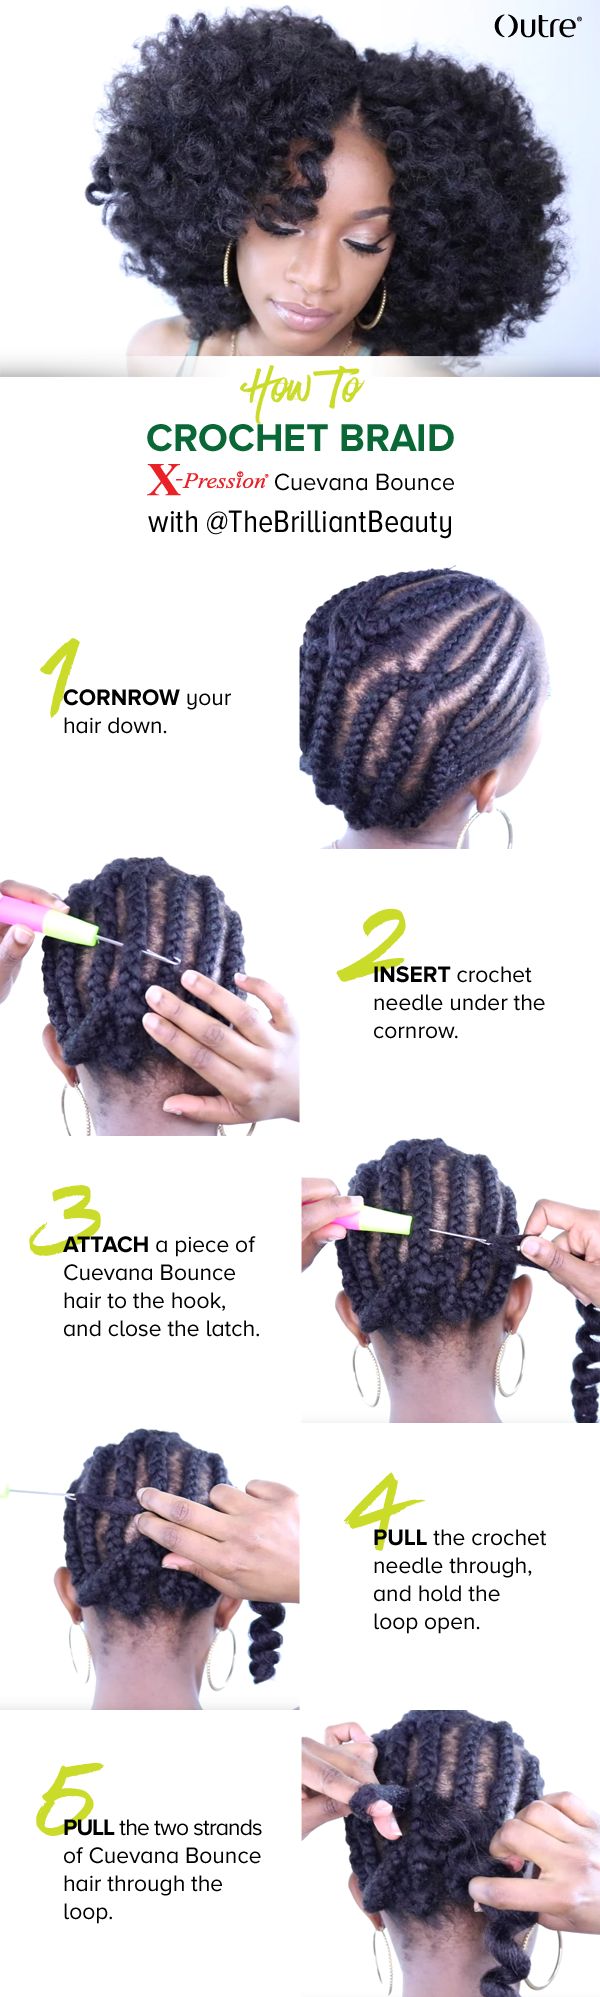 Learn how to Crochet Braid with @theBrilliantBeauty || Outre ...